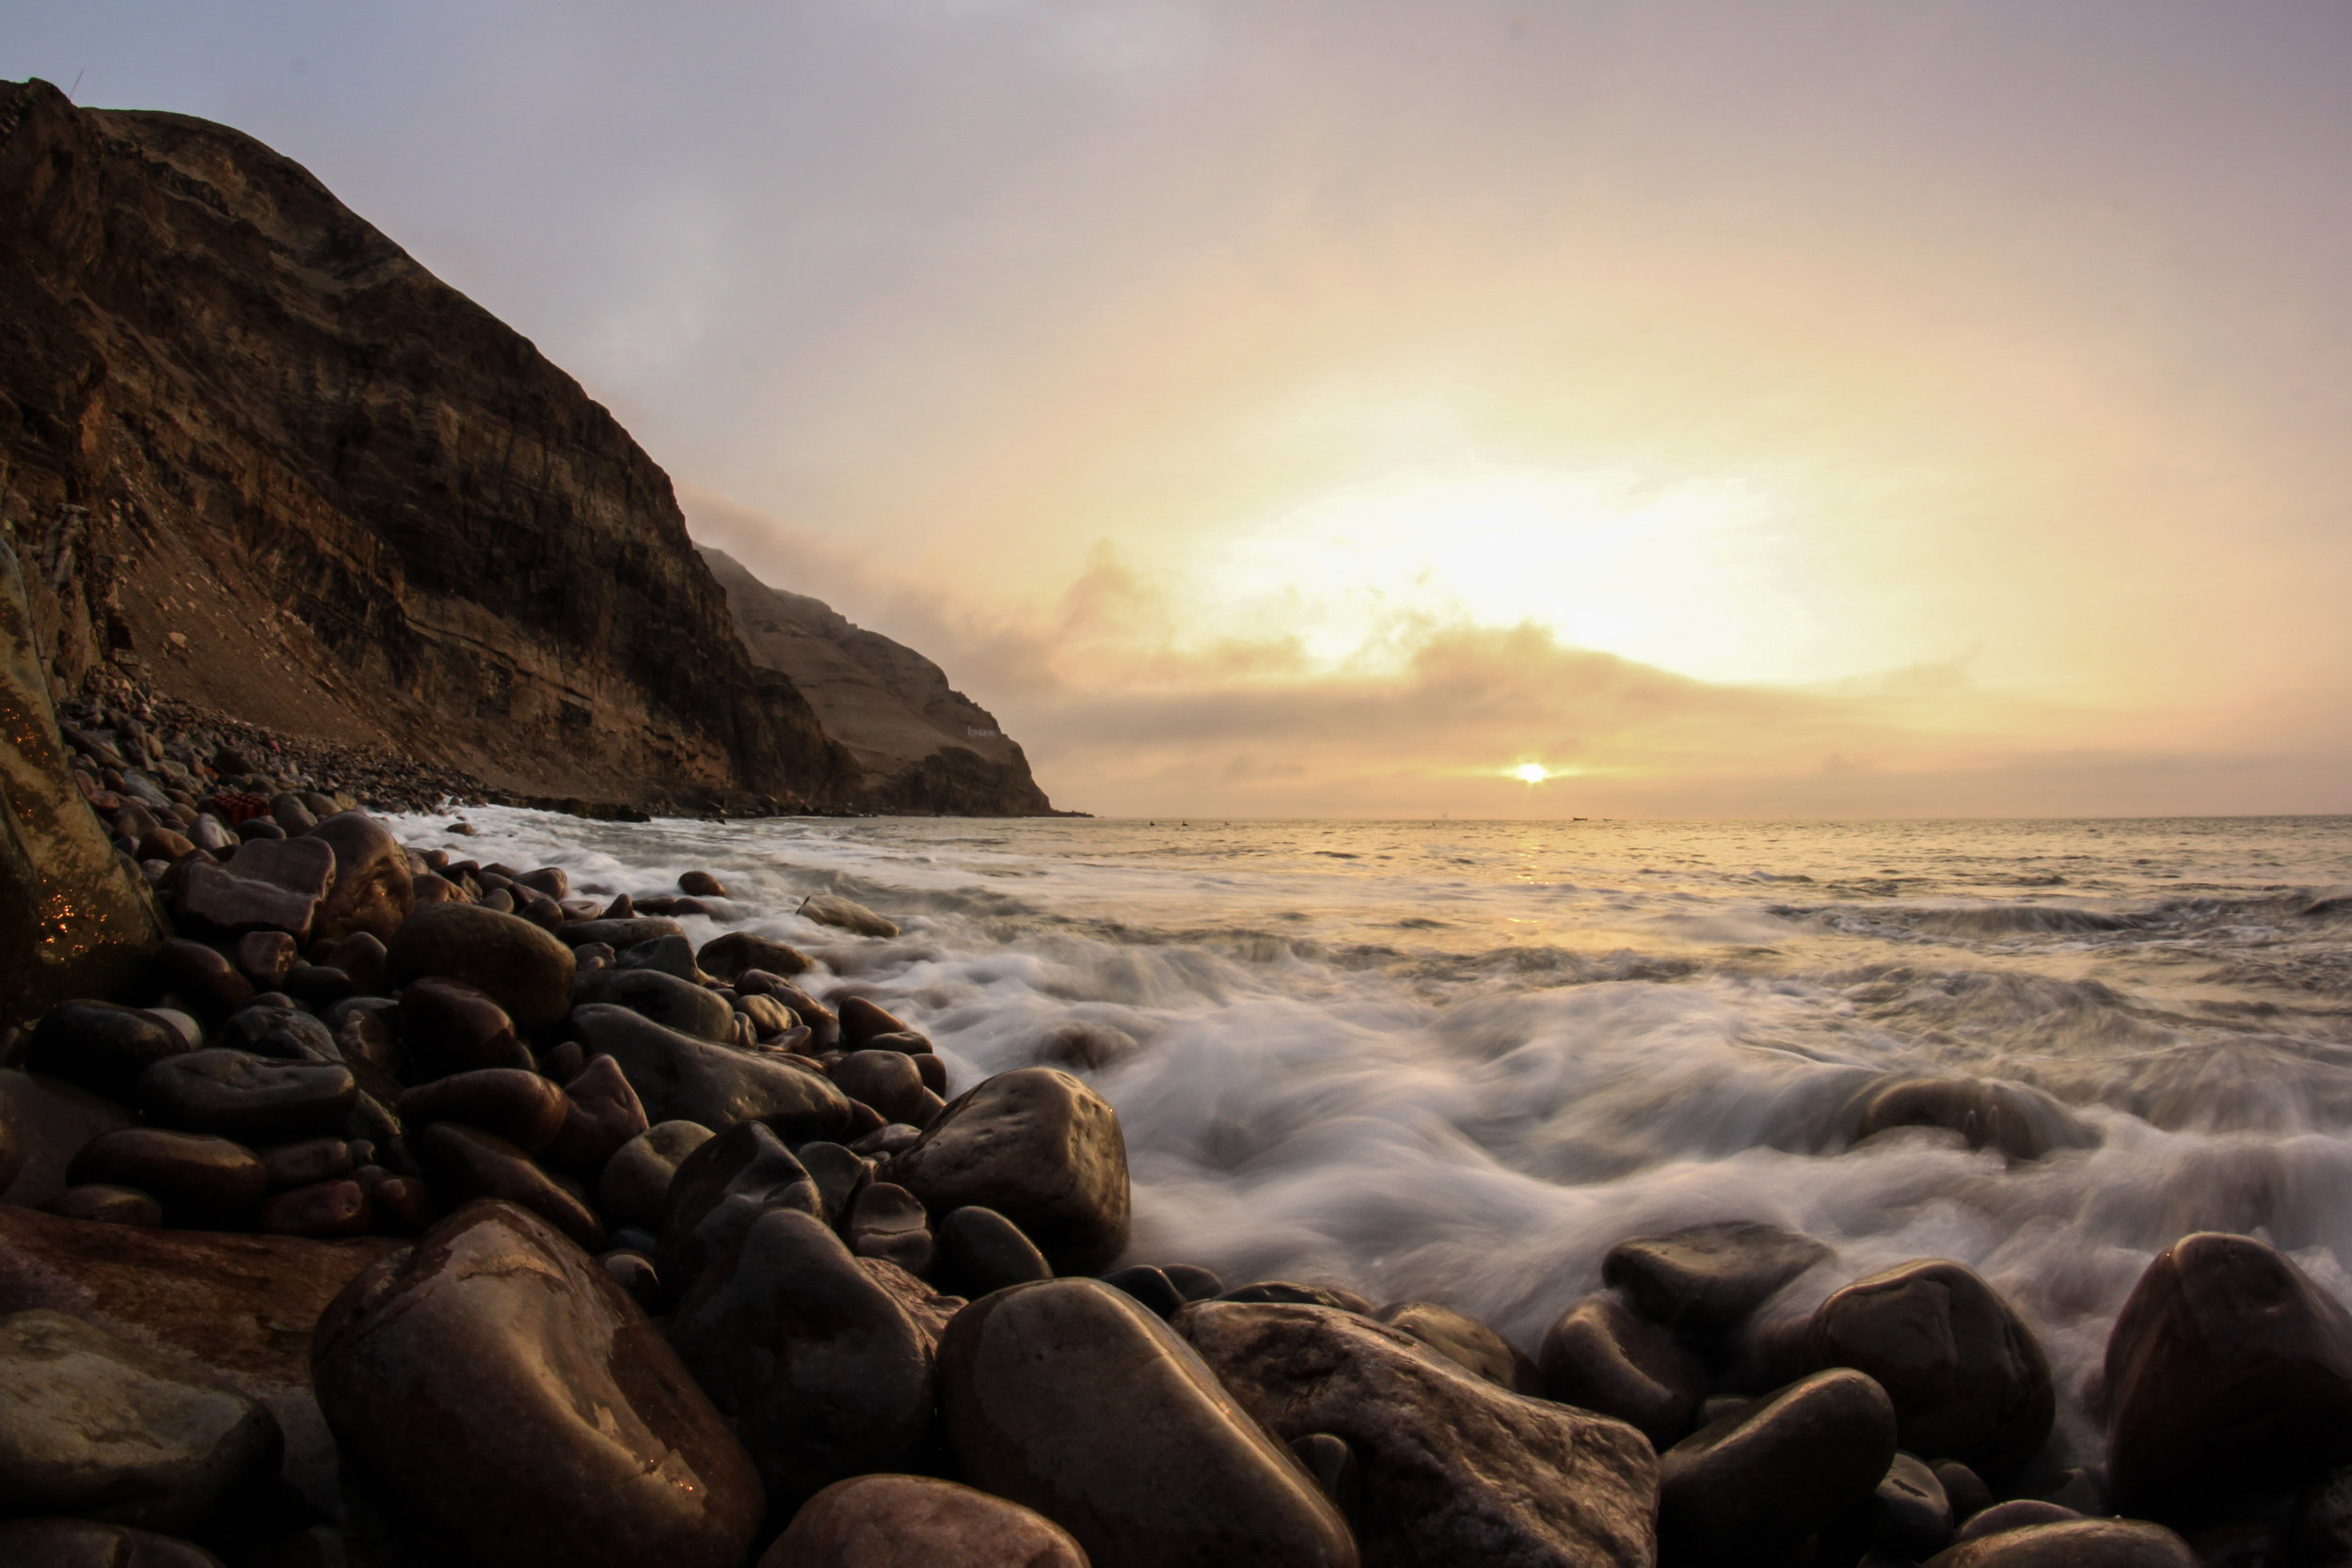 An artistic low level shot of La Herradura beach in Chorillos, Lima at sunset.